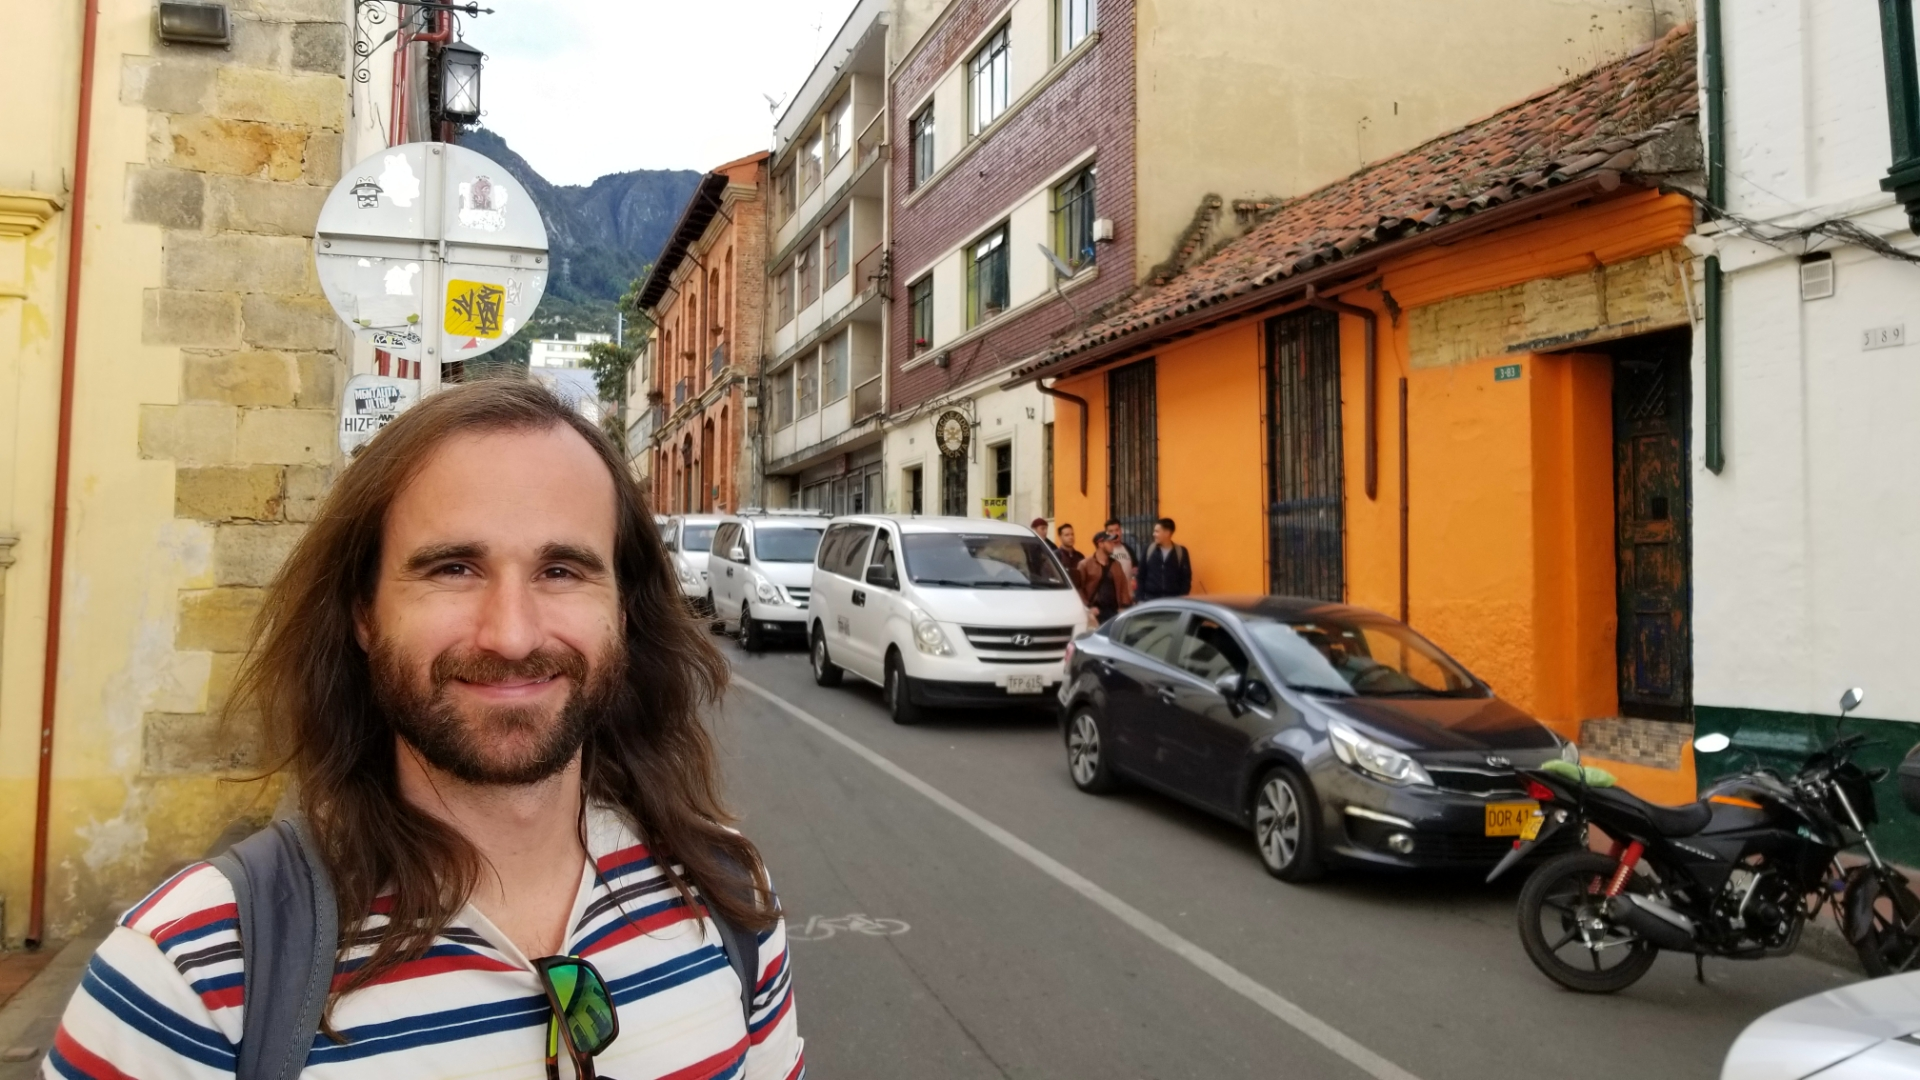 Jimmy exploring the streets of Bogota